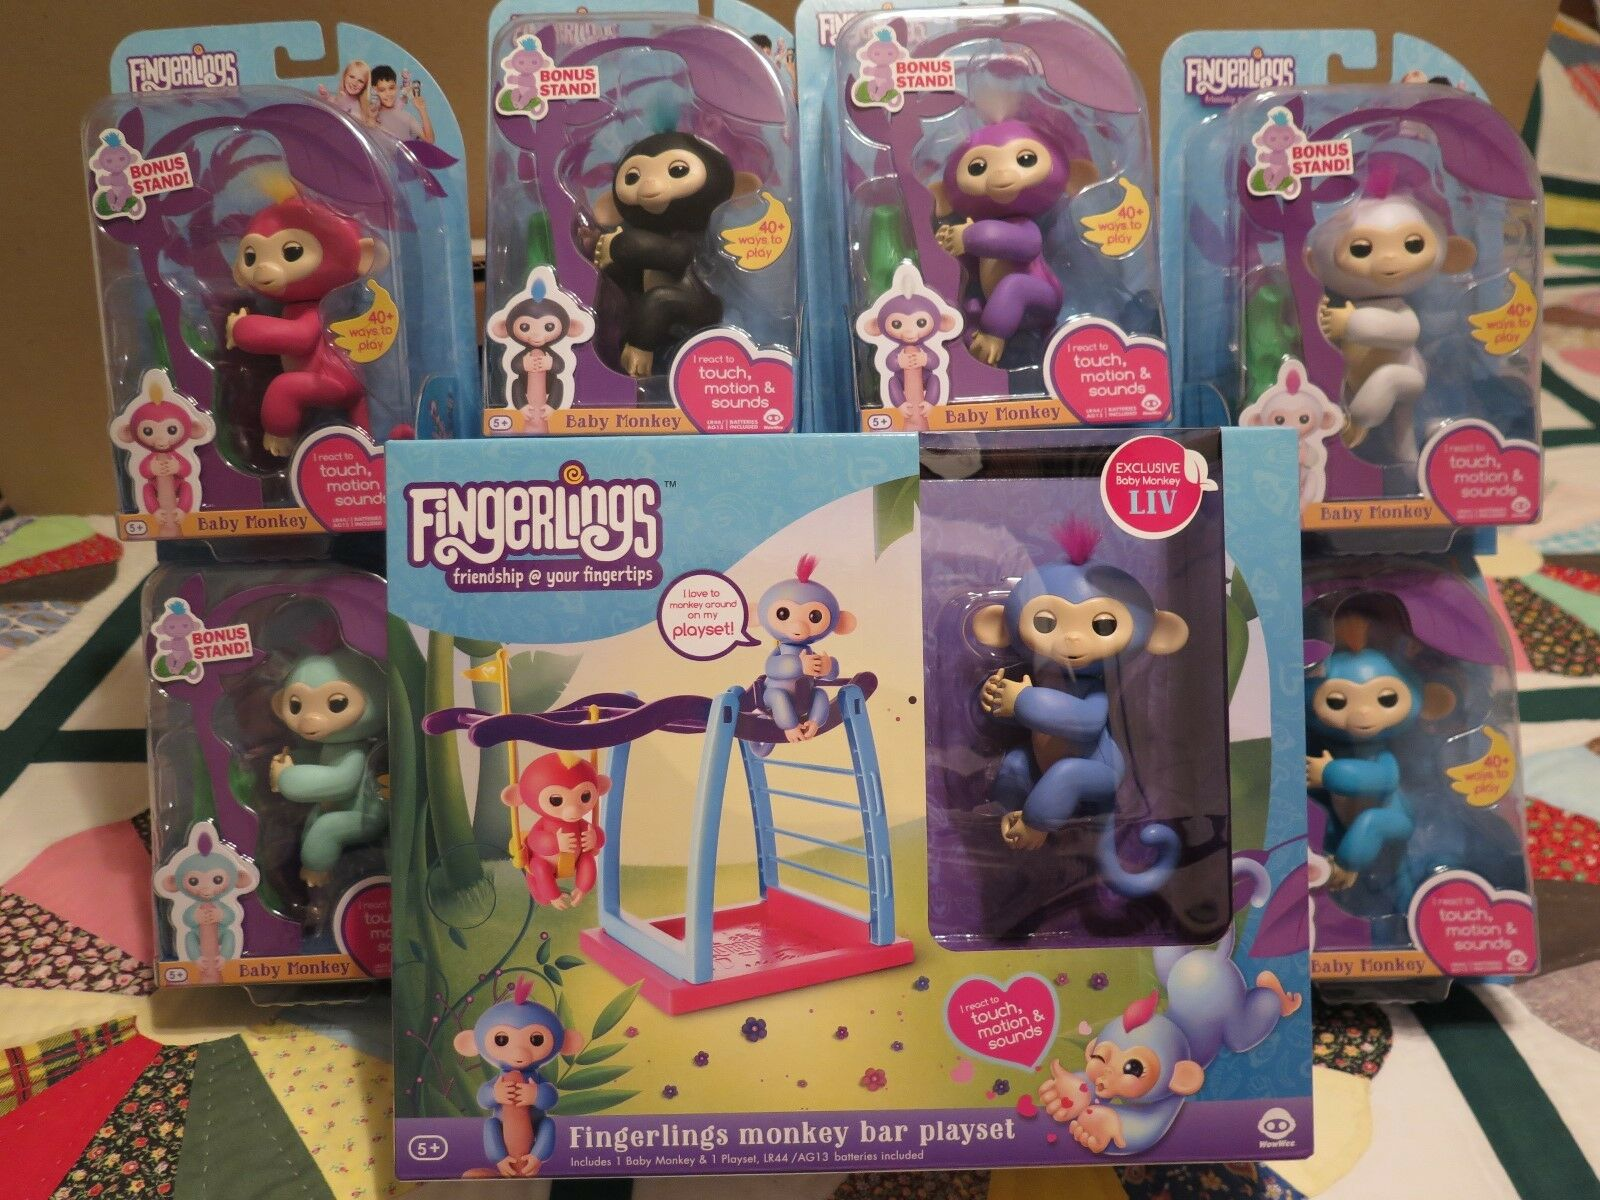 Complete Set of 6 WowWee Fingerlings Monkey Interactive Toy PLUS MONKEY BAR SET